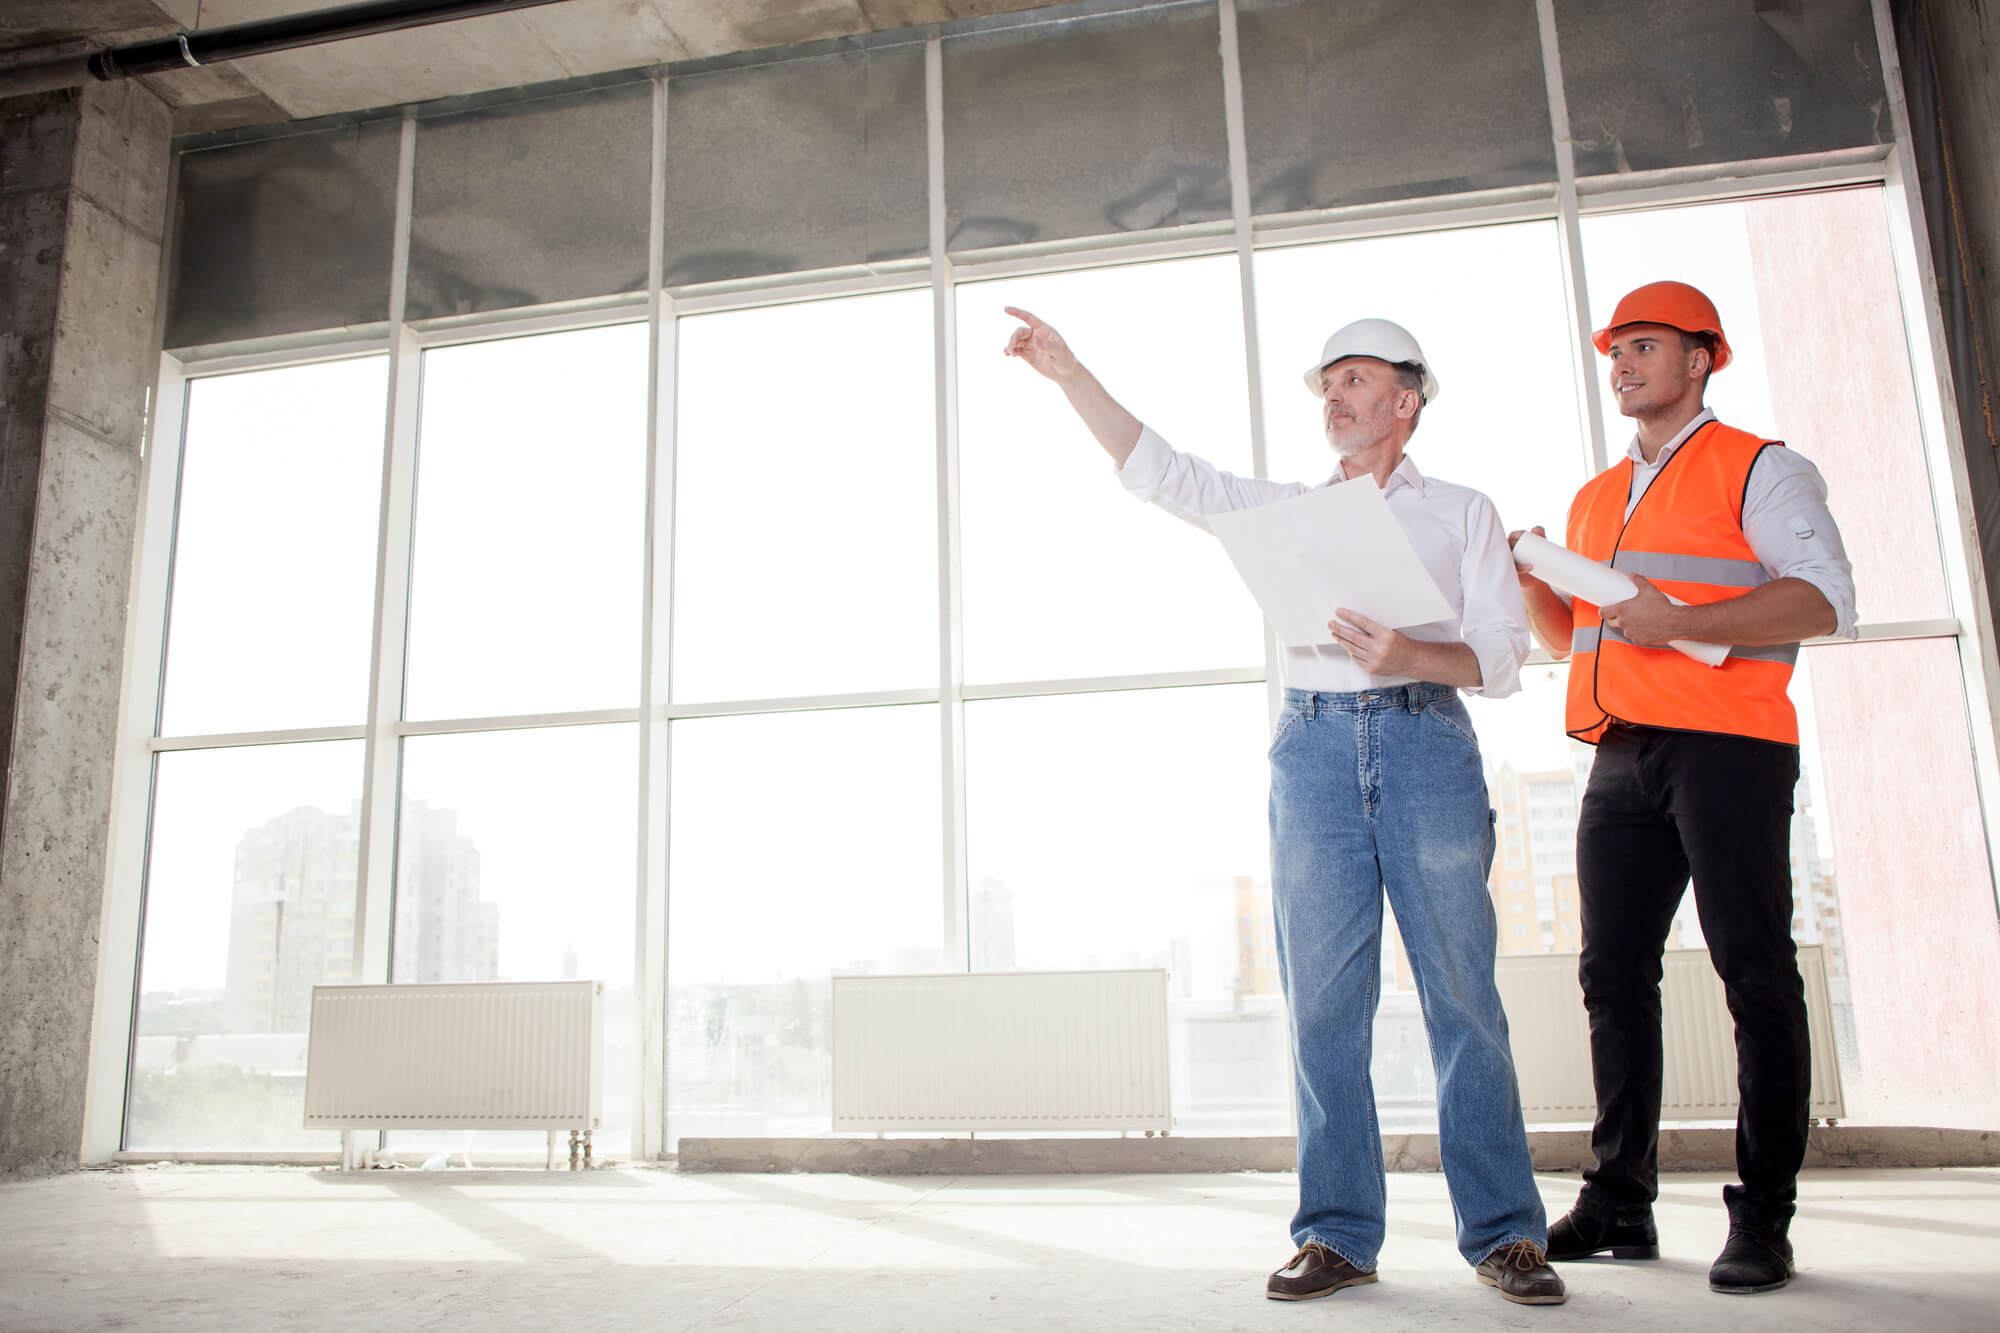 hiring-Renovation-Contractor How to Choose a Renovation Contractor